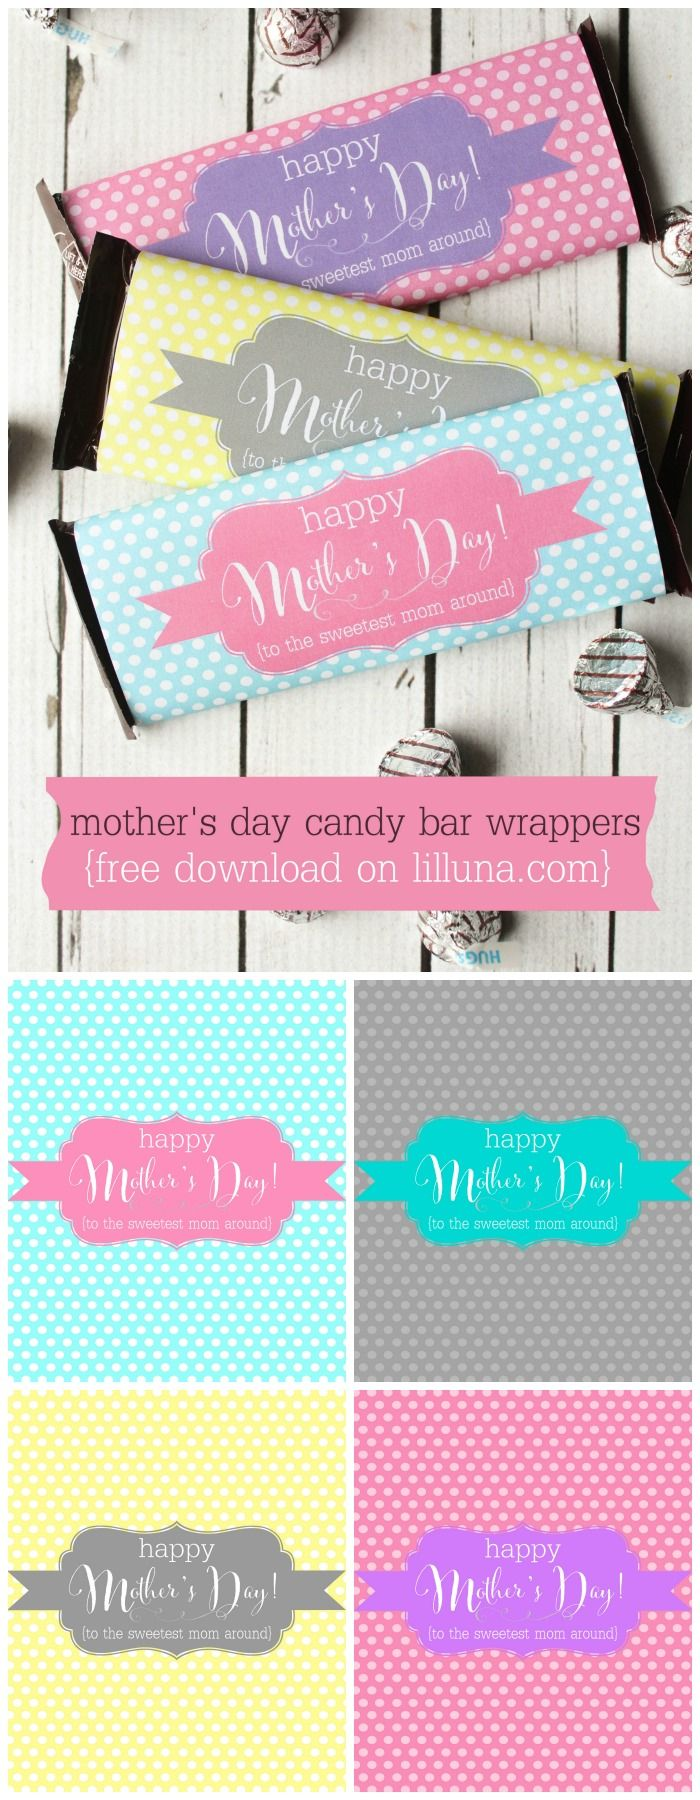 Fresh Make Your Own Mini Candy Bar Wrappers Free